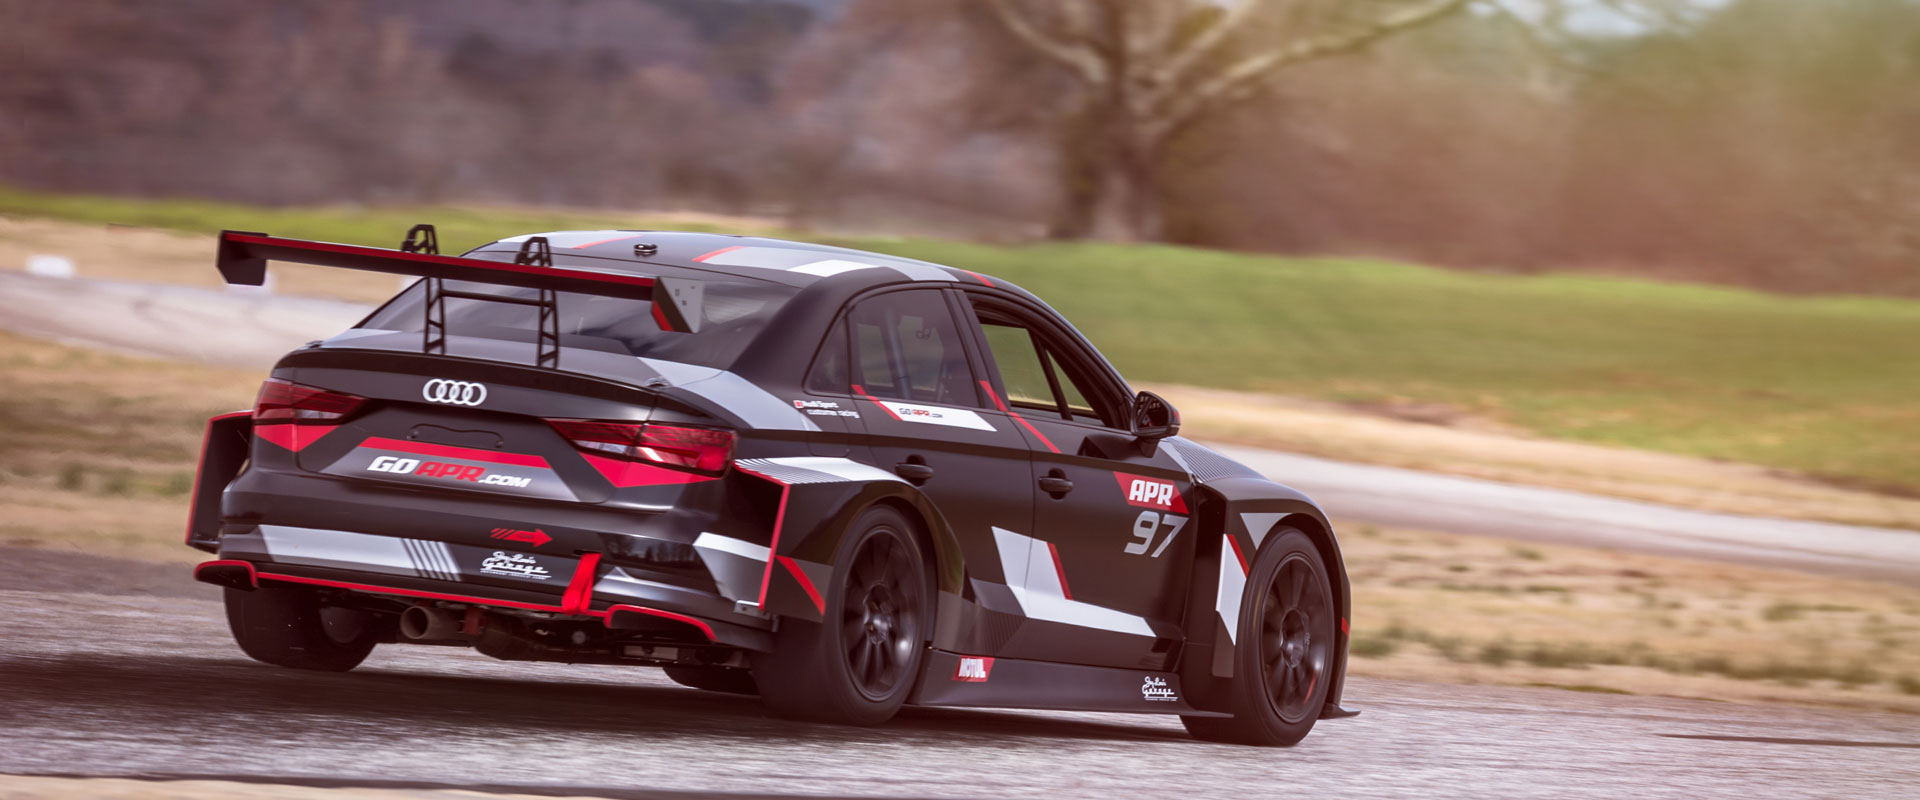 APR RS3 LMS (Rear) - Prodigy Motorsport - APR Authorised Dealer